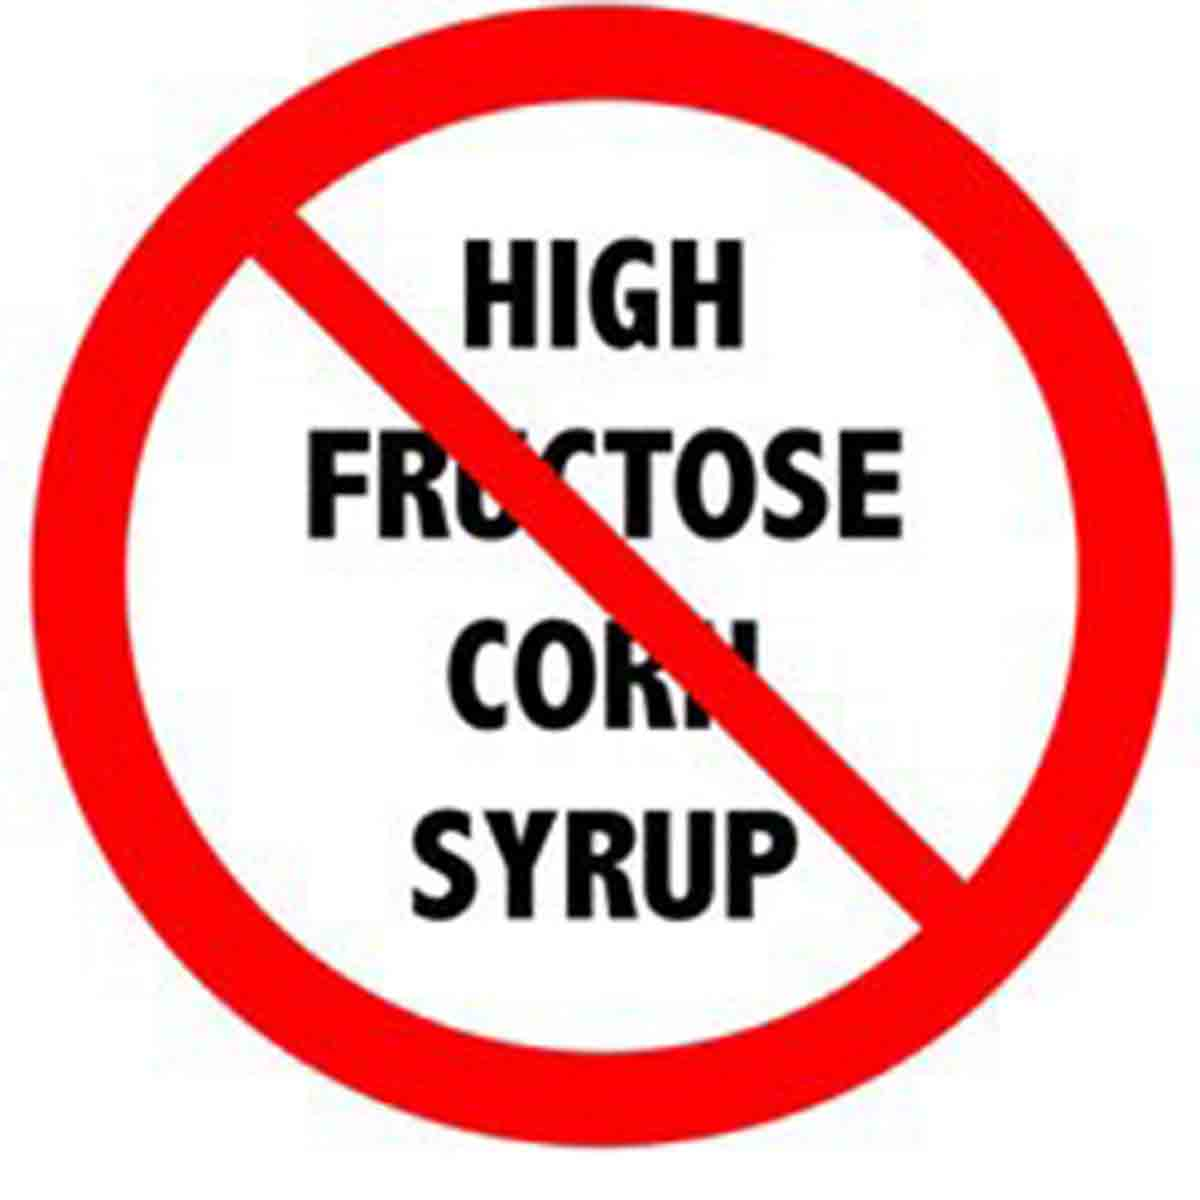 Dangers of high fructose and corn syrup